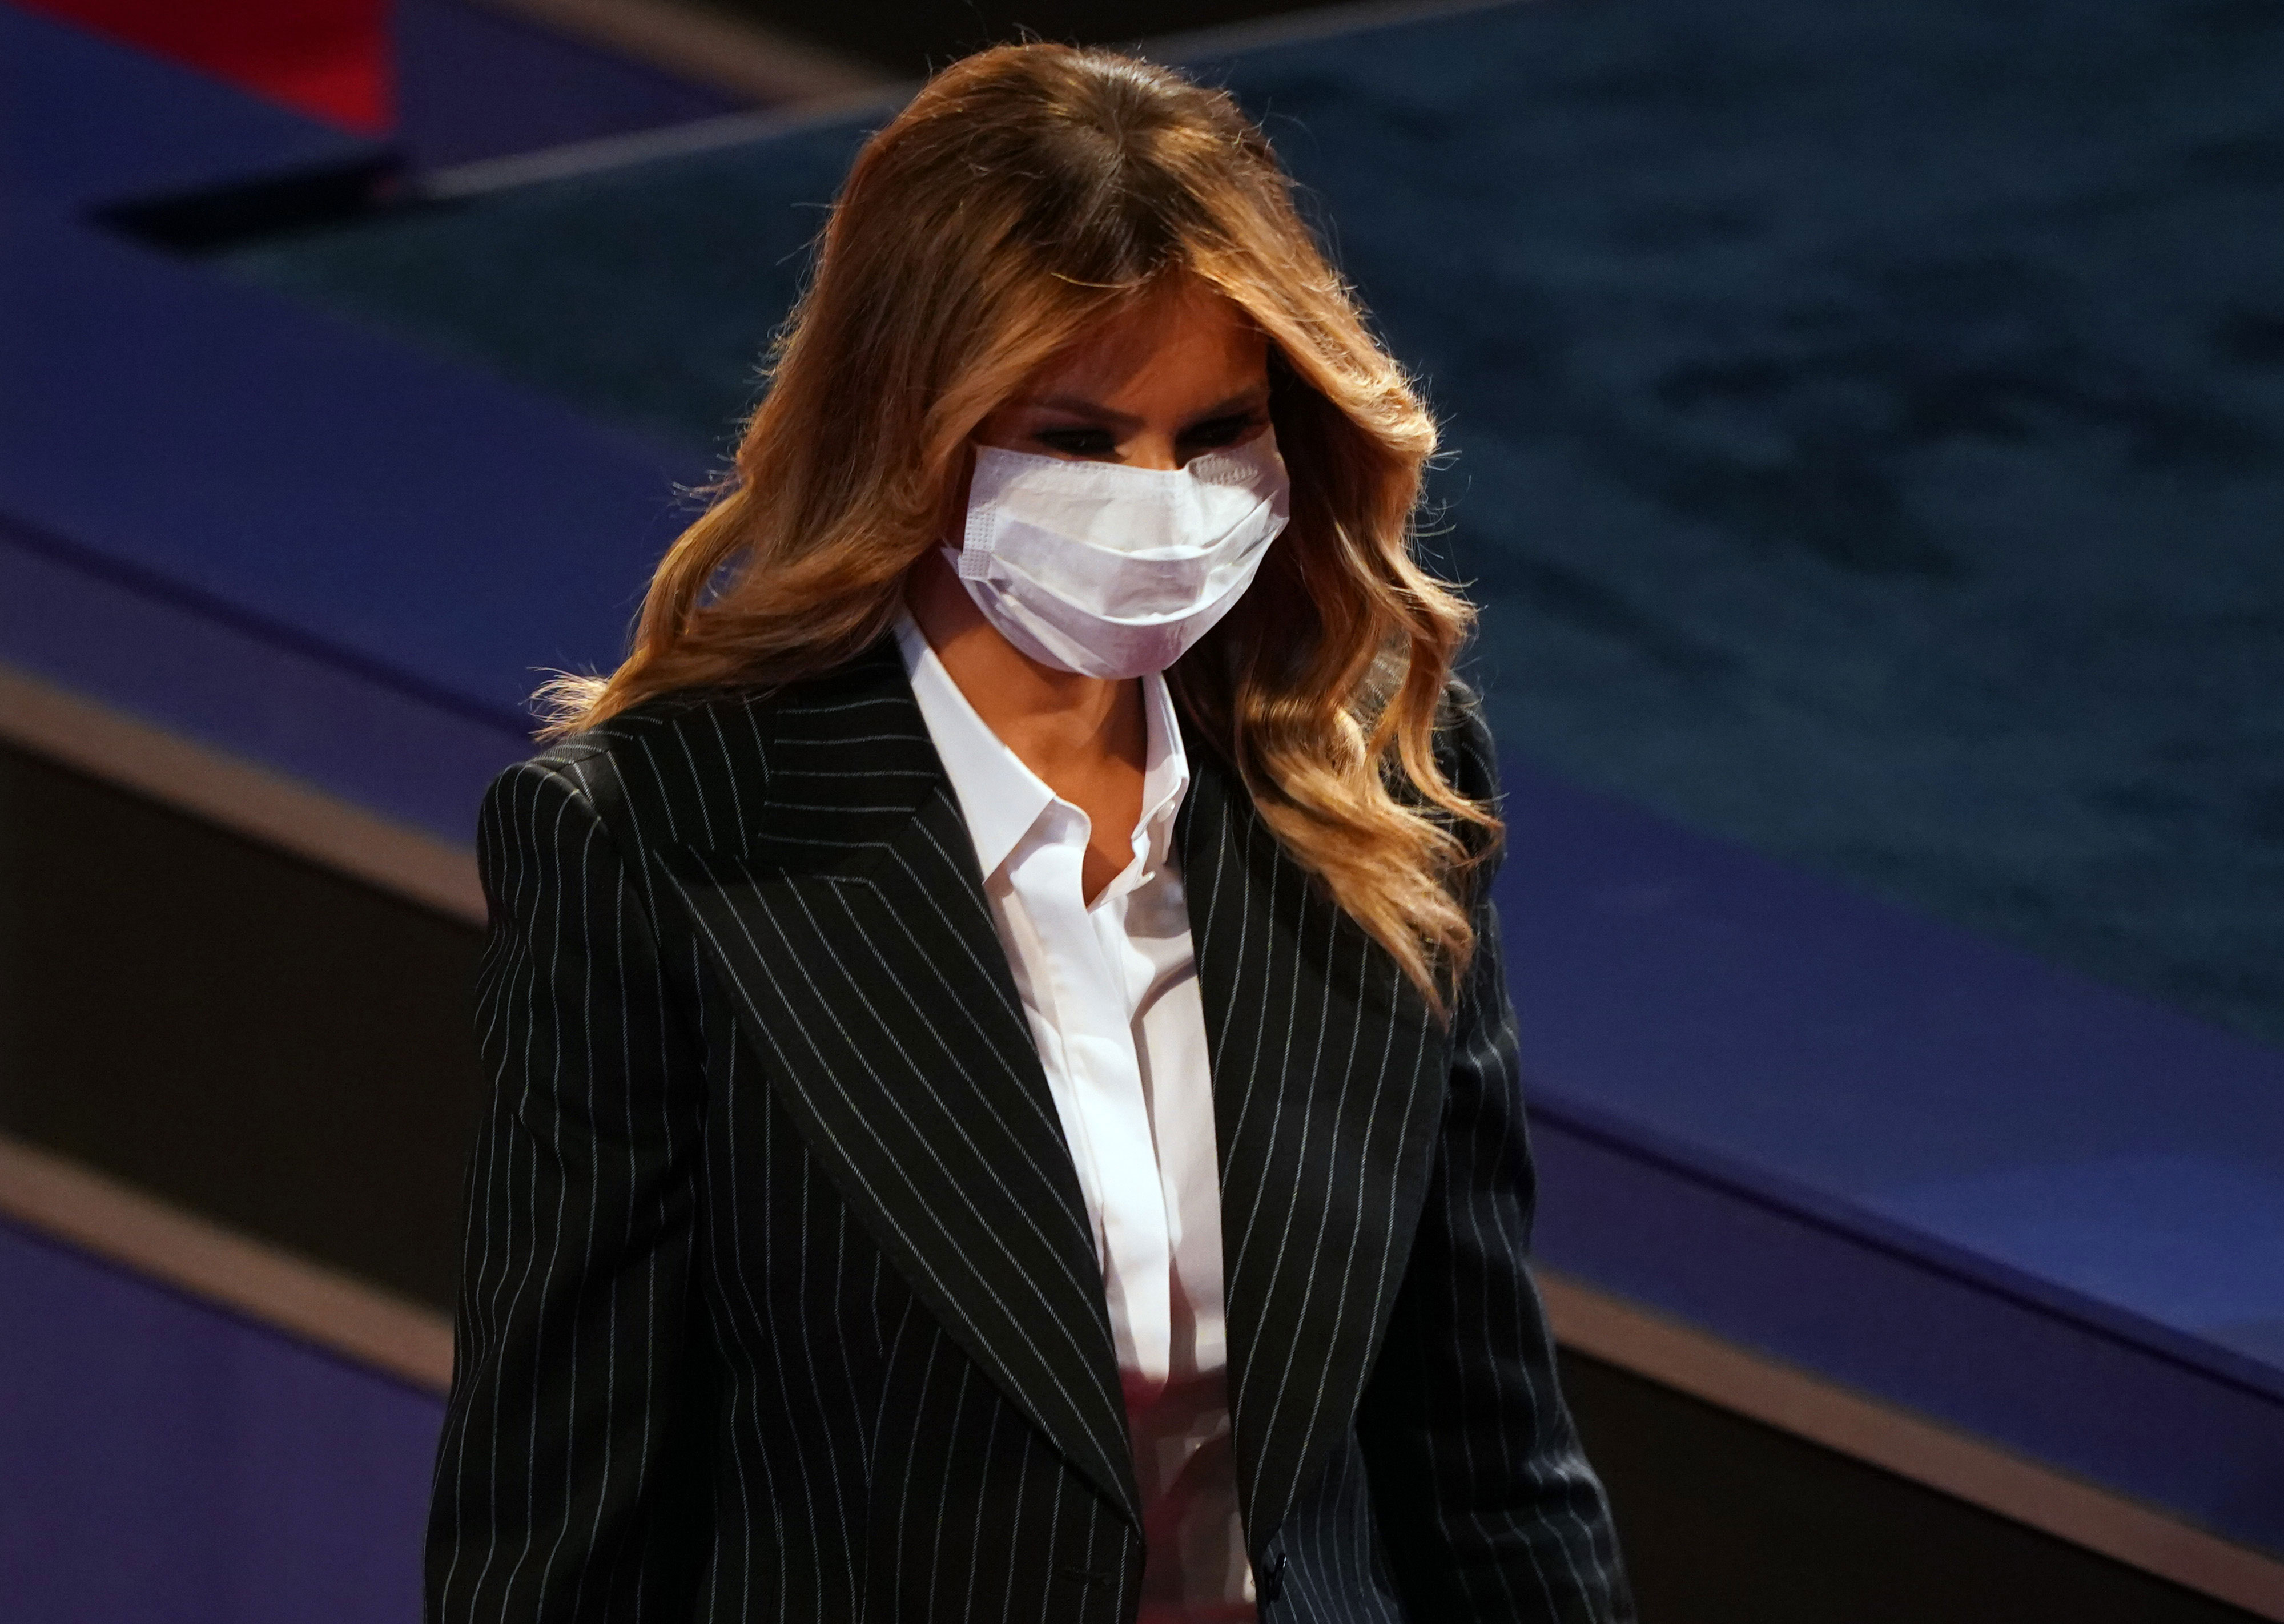 First lady Melania Trump attends the presidential debate in Cleveland on September 29.